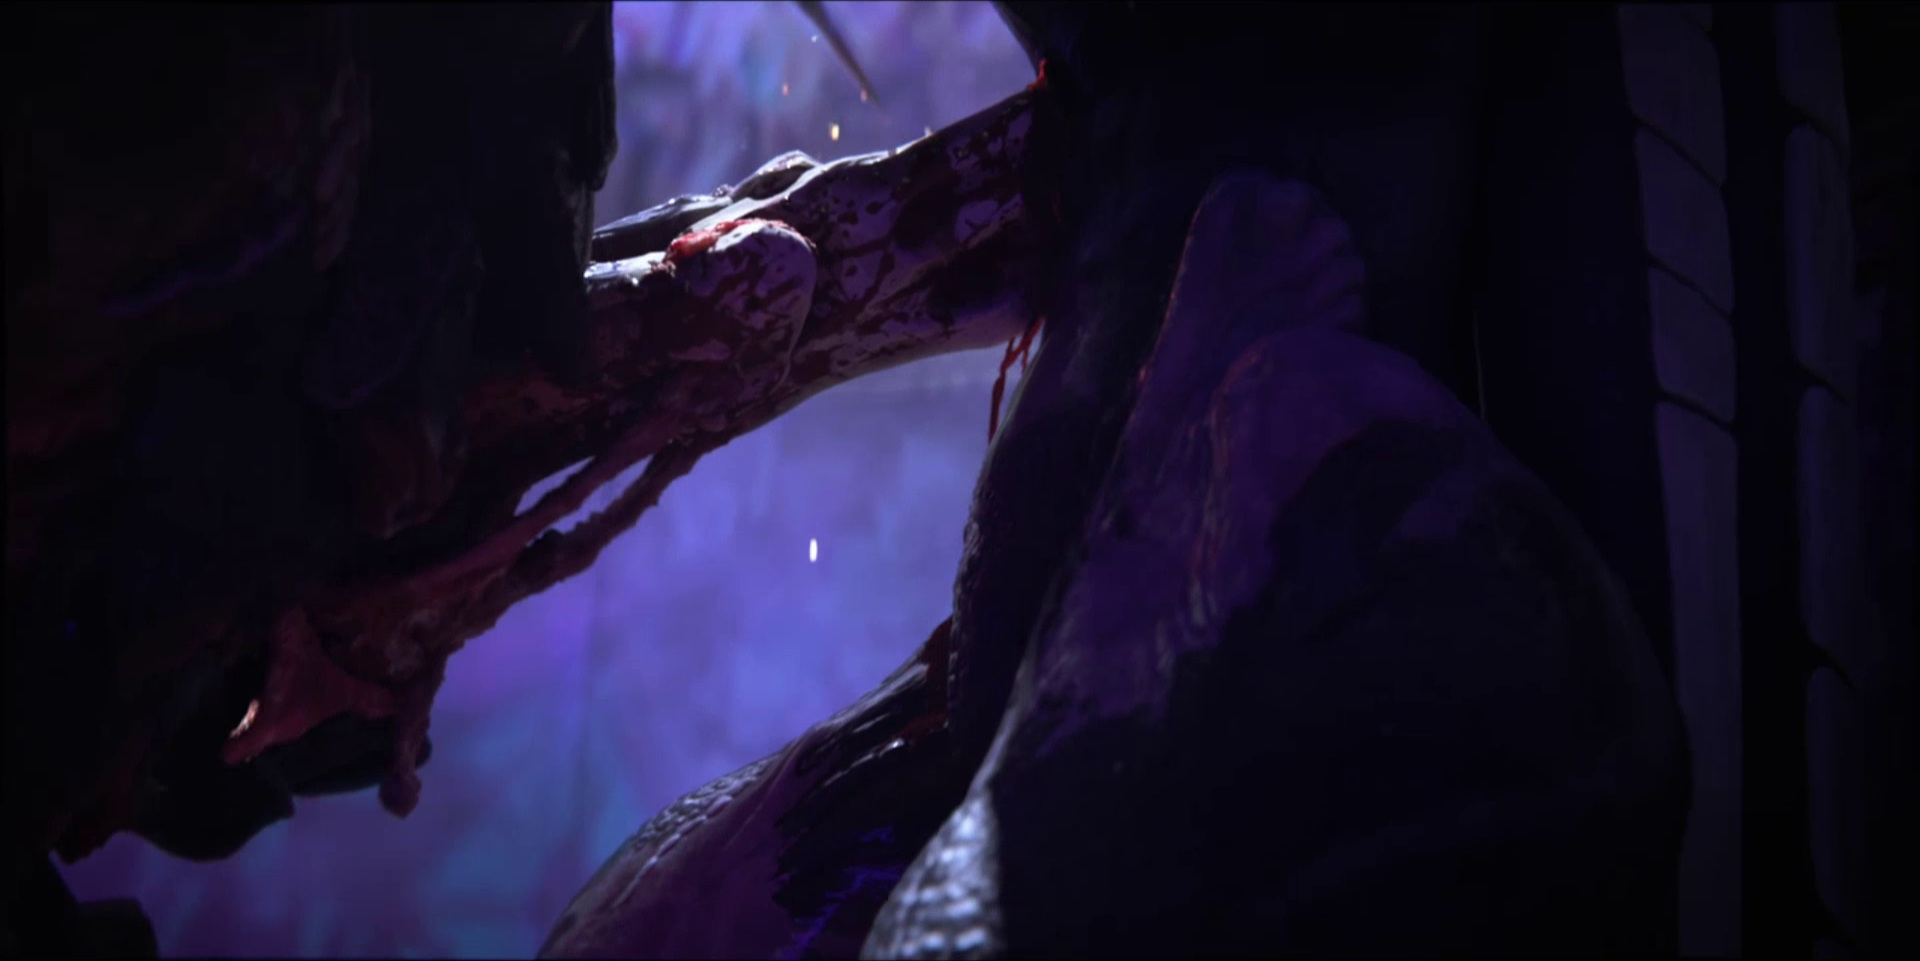 """Sonnie's Edge,""  Love Death + Robots  (Netlfix, 2019), Turboraptor penetrates Turboraptor with his blade"